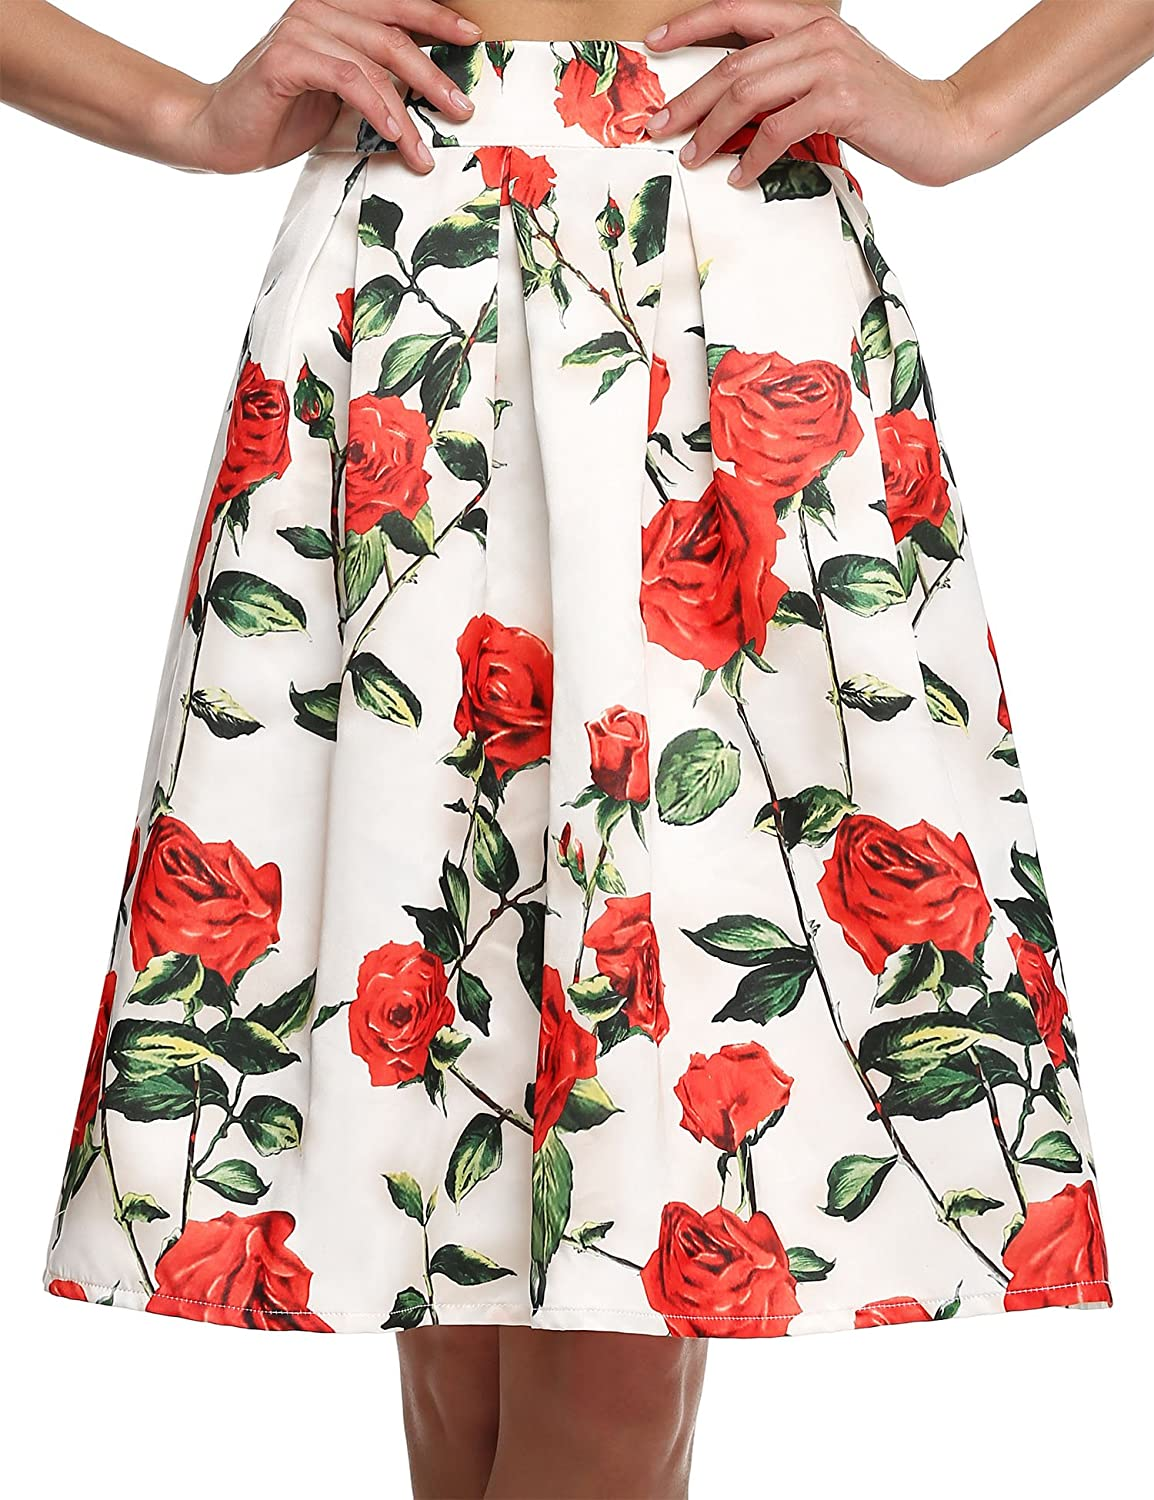 Zeagoo Women Floral Print Fort Worth Mall Free shipping / New Pleated Skirt Vintage High Waist